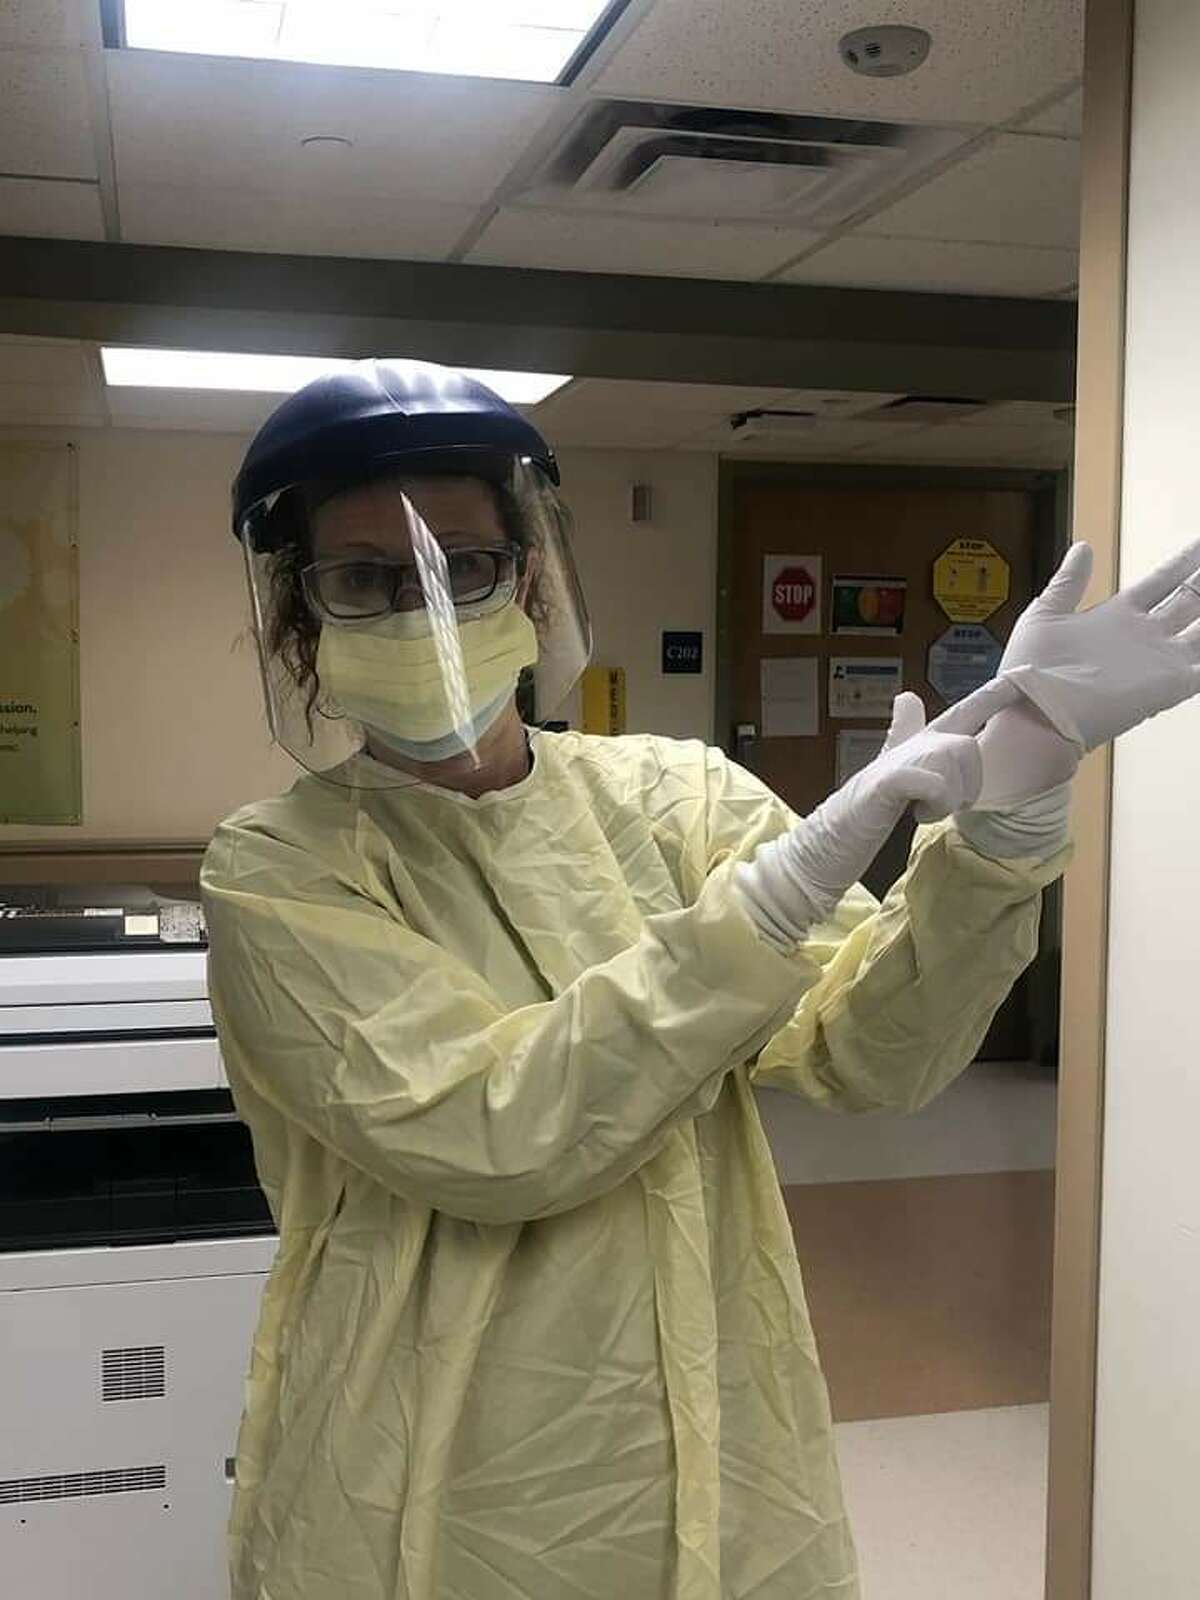 Karen Vincent, the new COVID-19 Coordinator for East Greenbush Central School District, is in her personal protective equipment at Albany Medial Center Hospital in the spring of 2020.